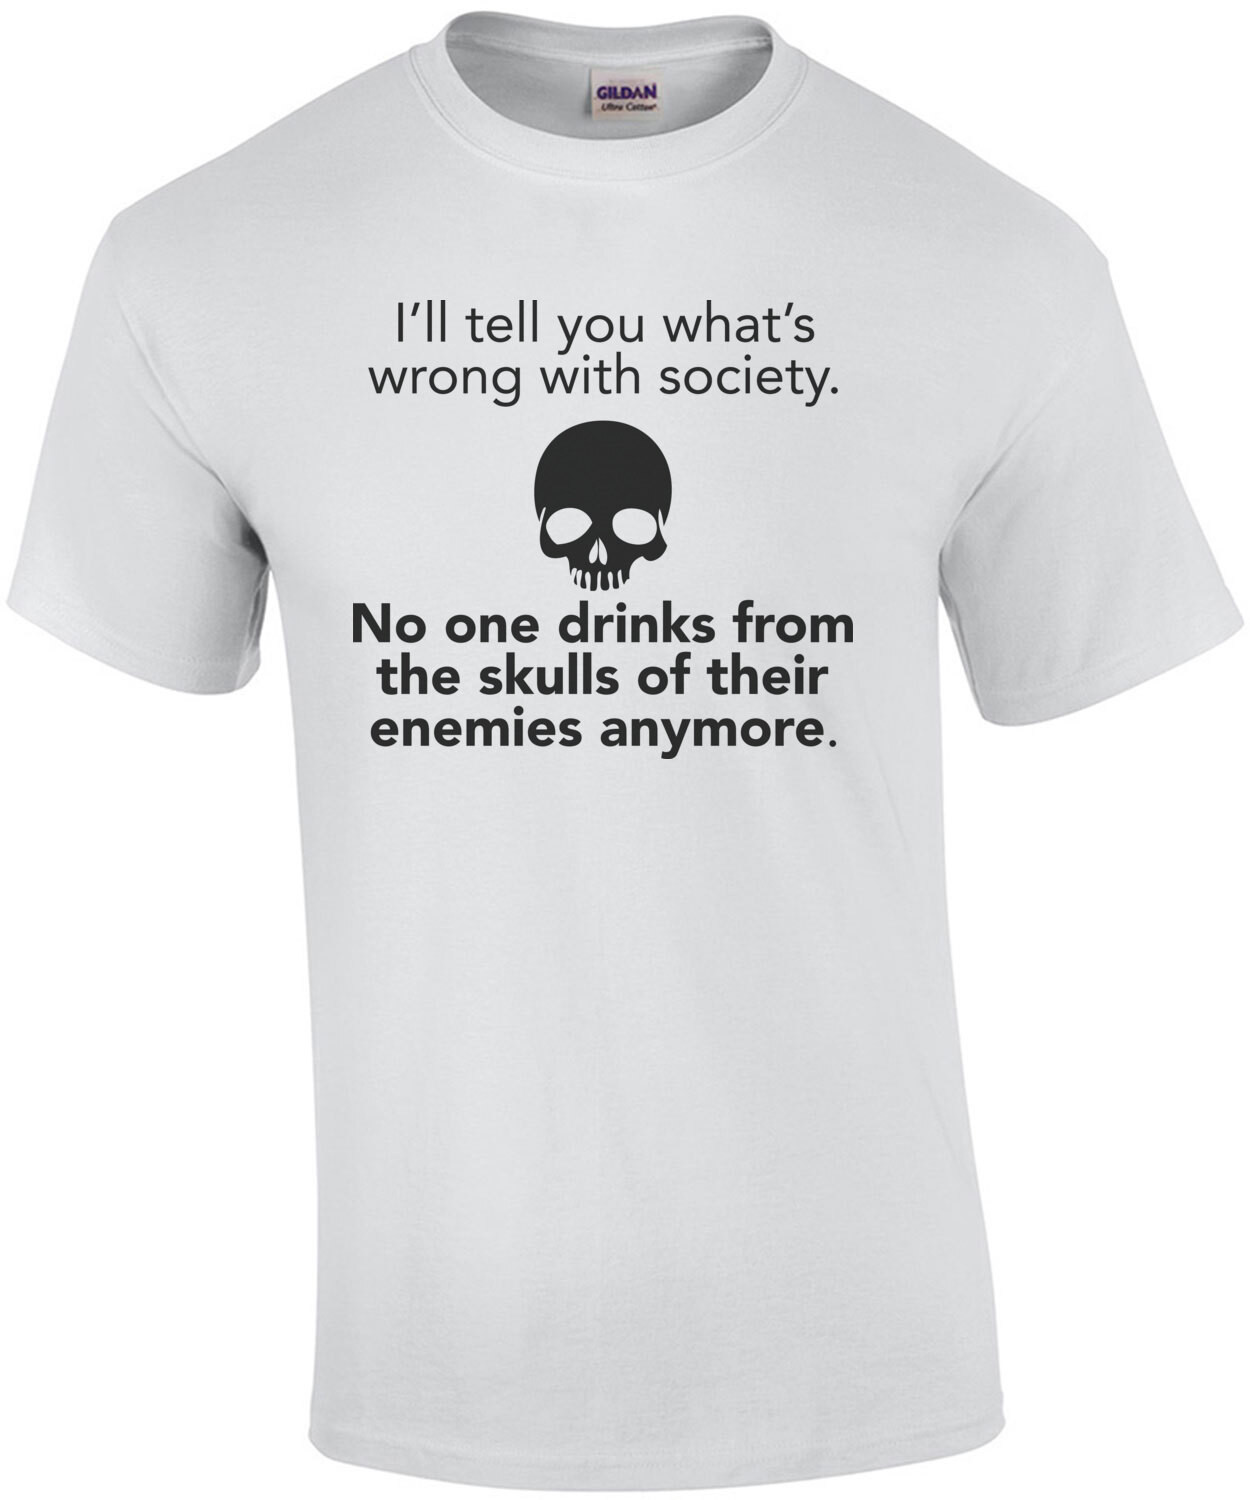 I'll tell you what's wrong with society. No one drinks from their skulls of their enemies anymore - funny t-shirt